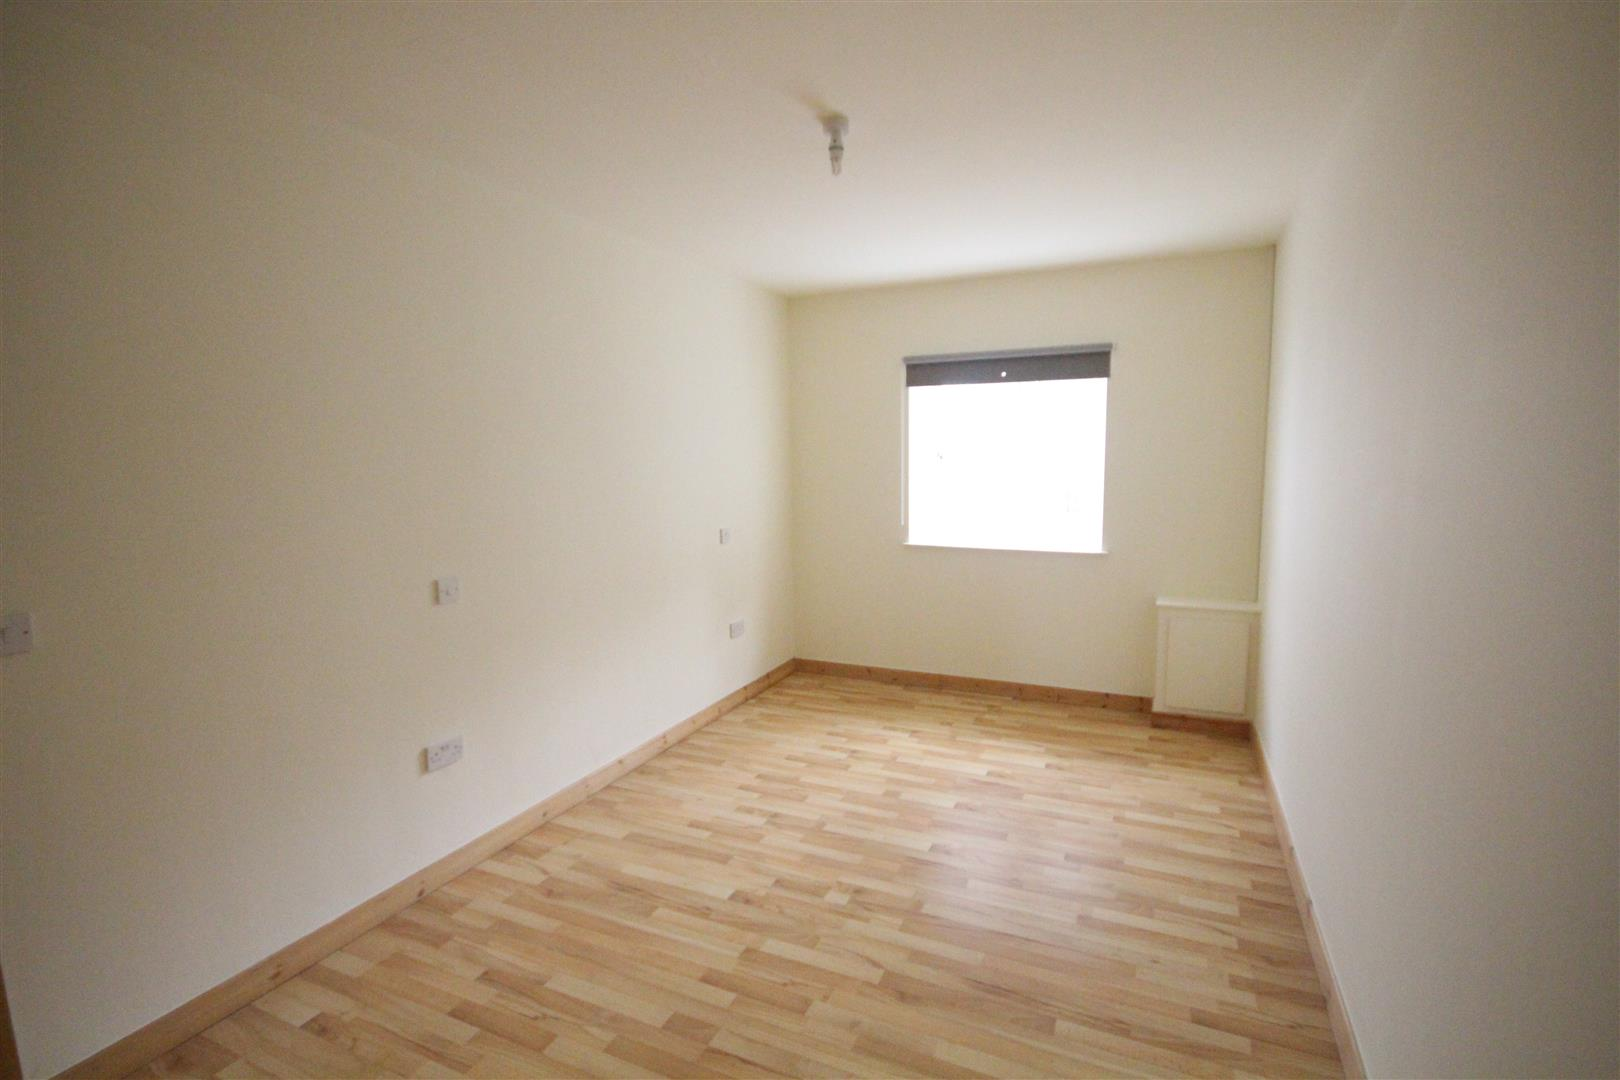 2 bedroom bungalow For Sale in Colne - IMG_0825.JPG